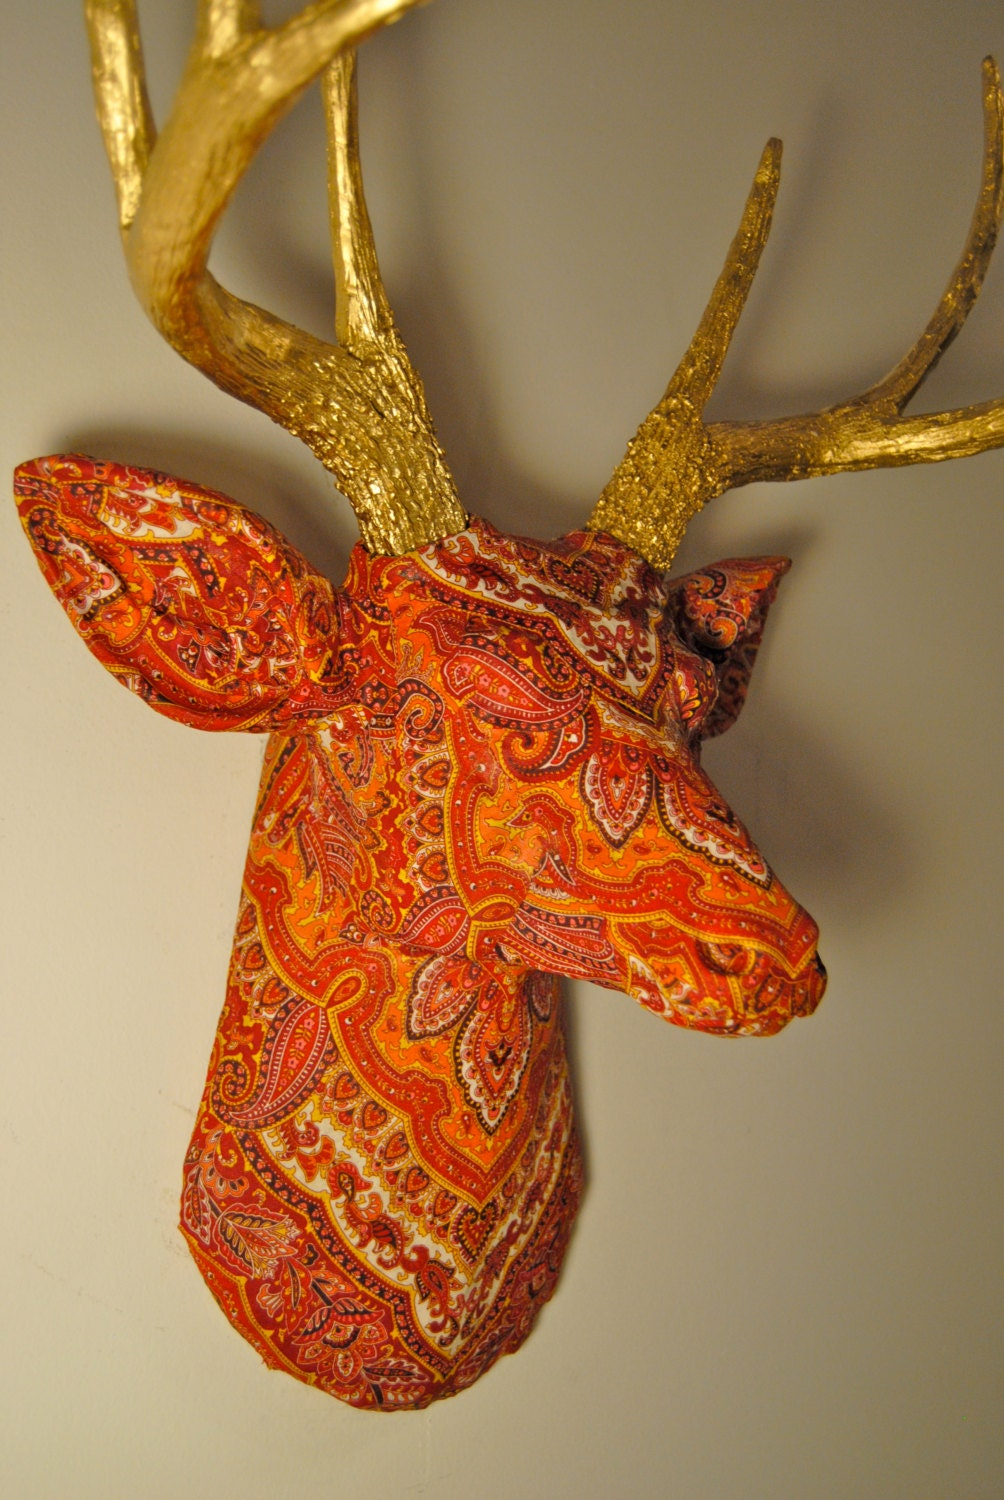 The Bali Deer Faux Taxidermy Faux Fabric Deer Head